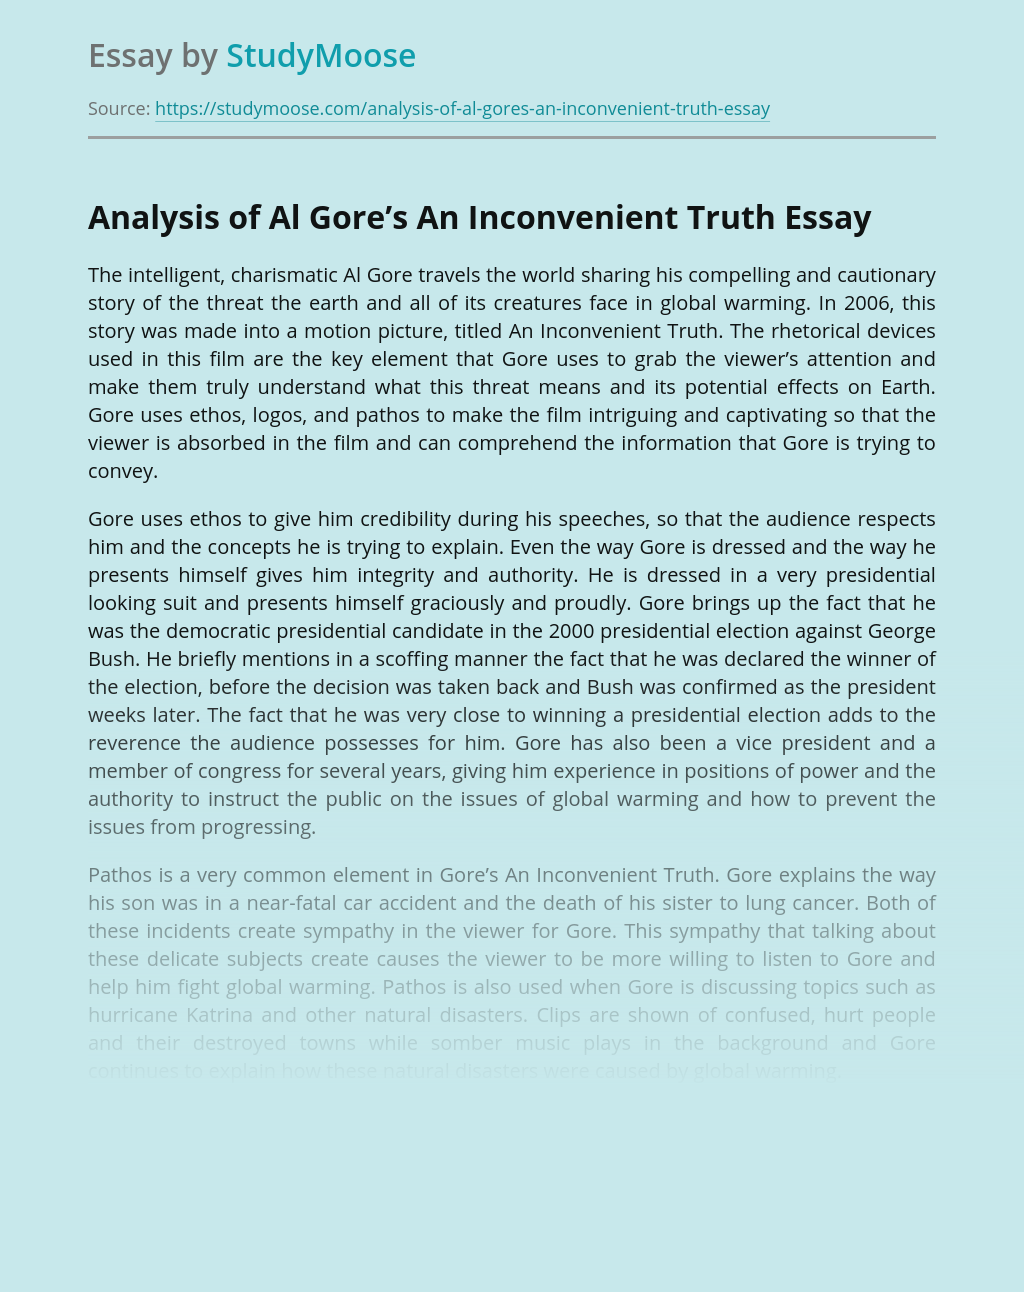 Analysis of Al Gore's An Inconvenient Truth